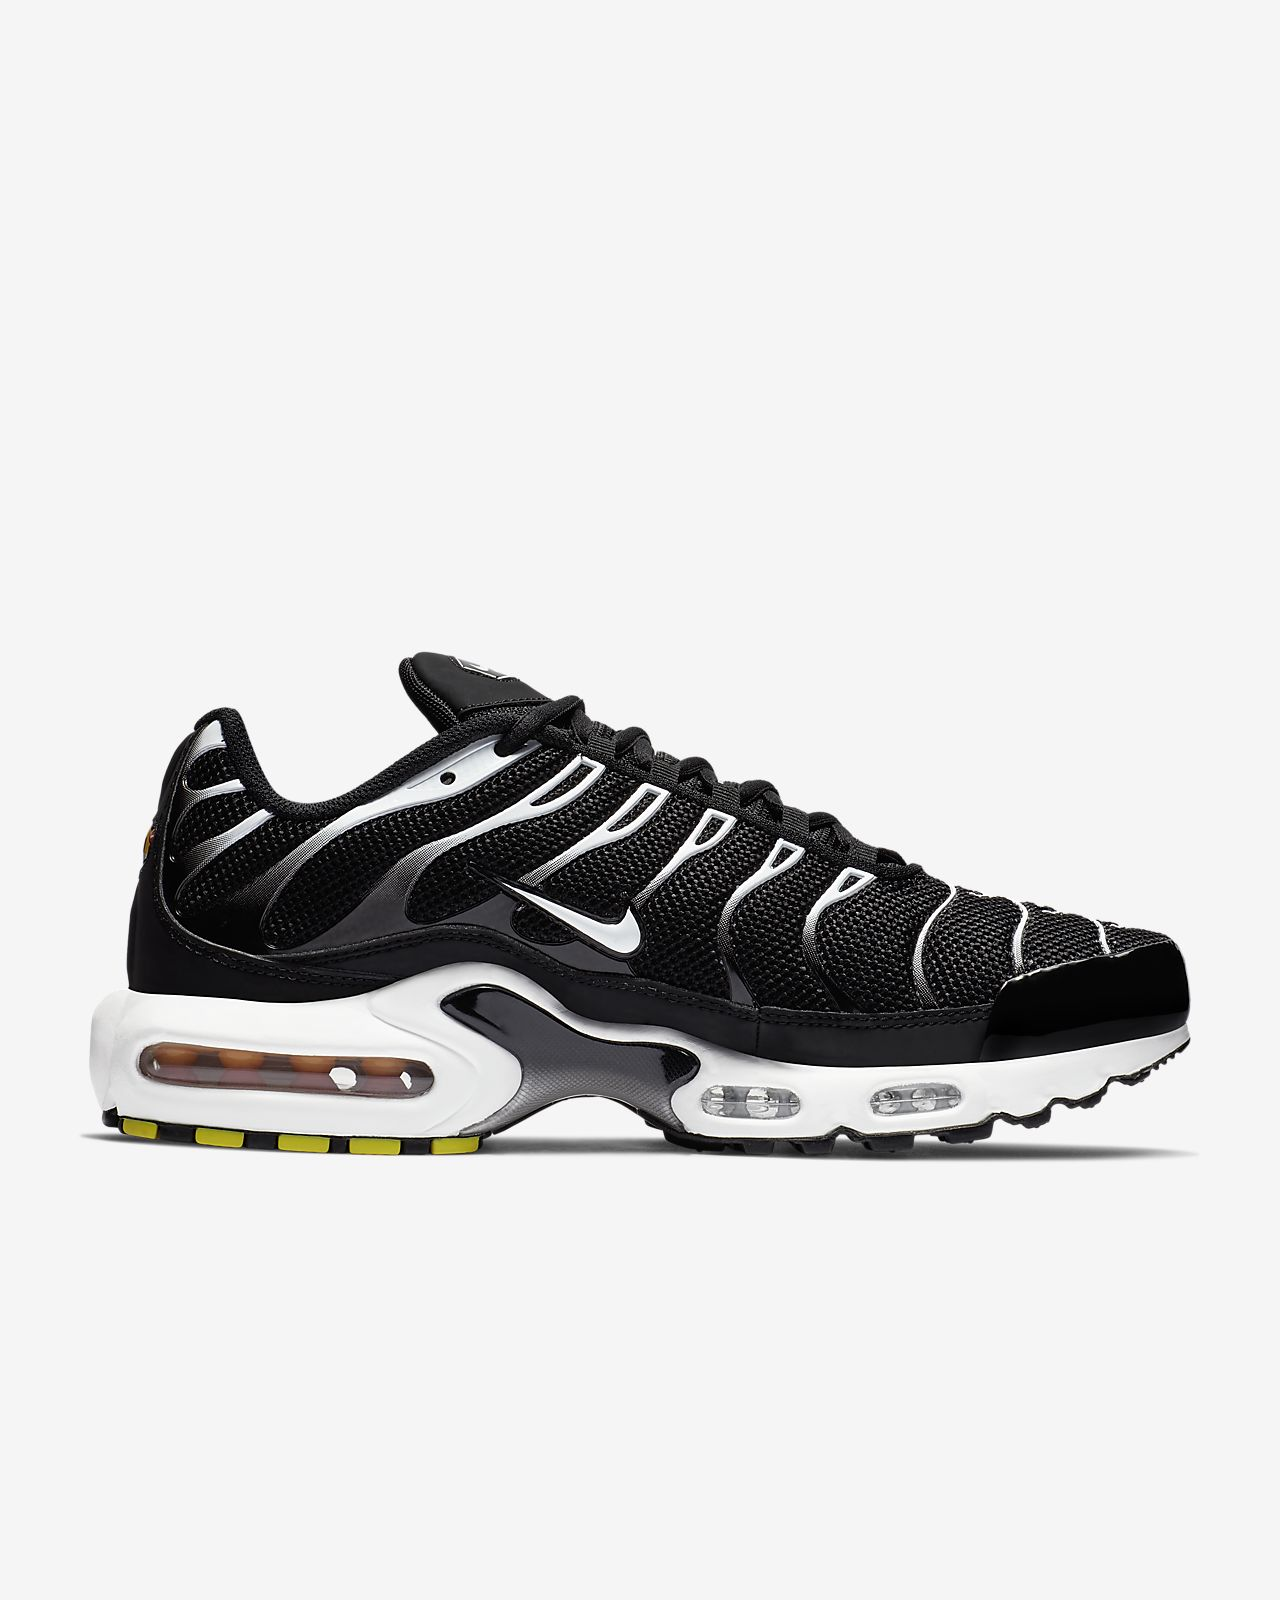 free shipping 449c8 3ac6d Low Resolution Chaussure Nike Air Max Plus pour Homme Chaussure Nike Air Max  Plus pour Homme